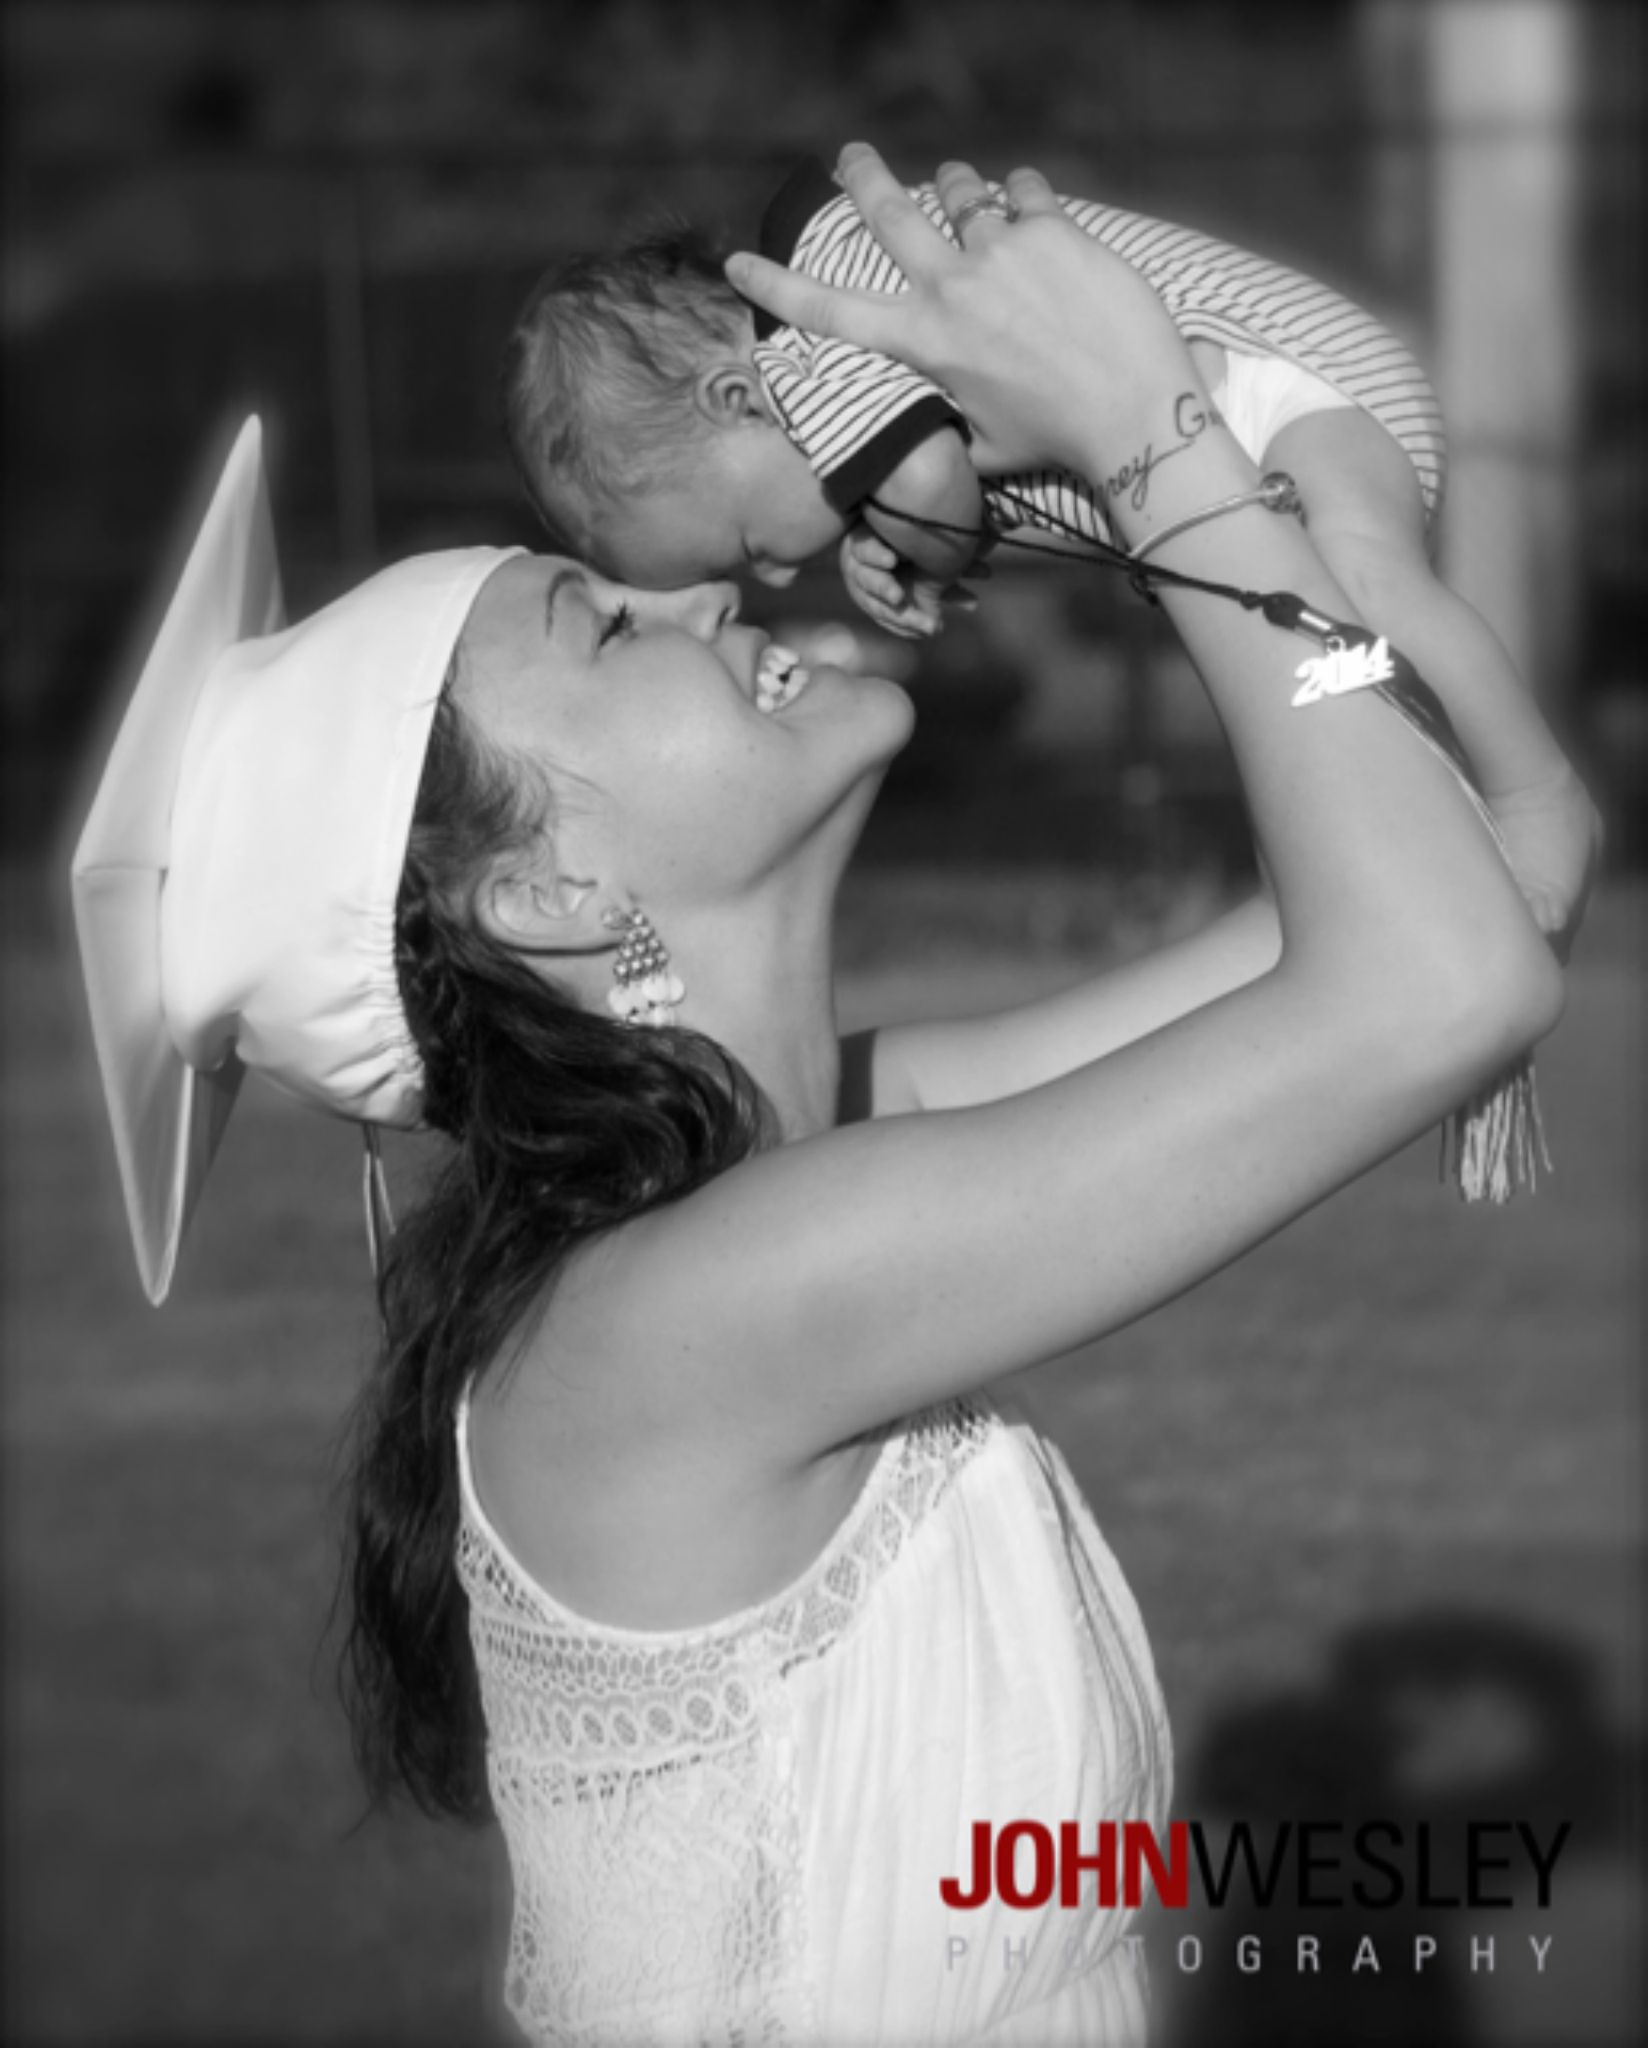 My Baby Brother by John Wesley Photography